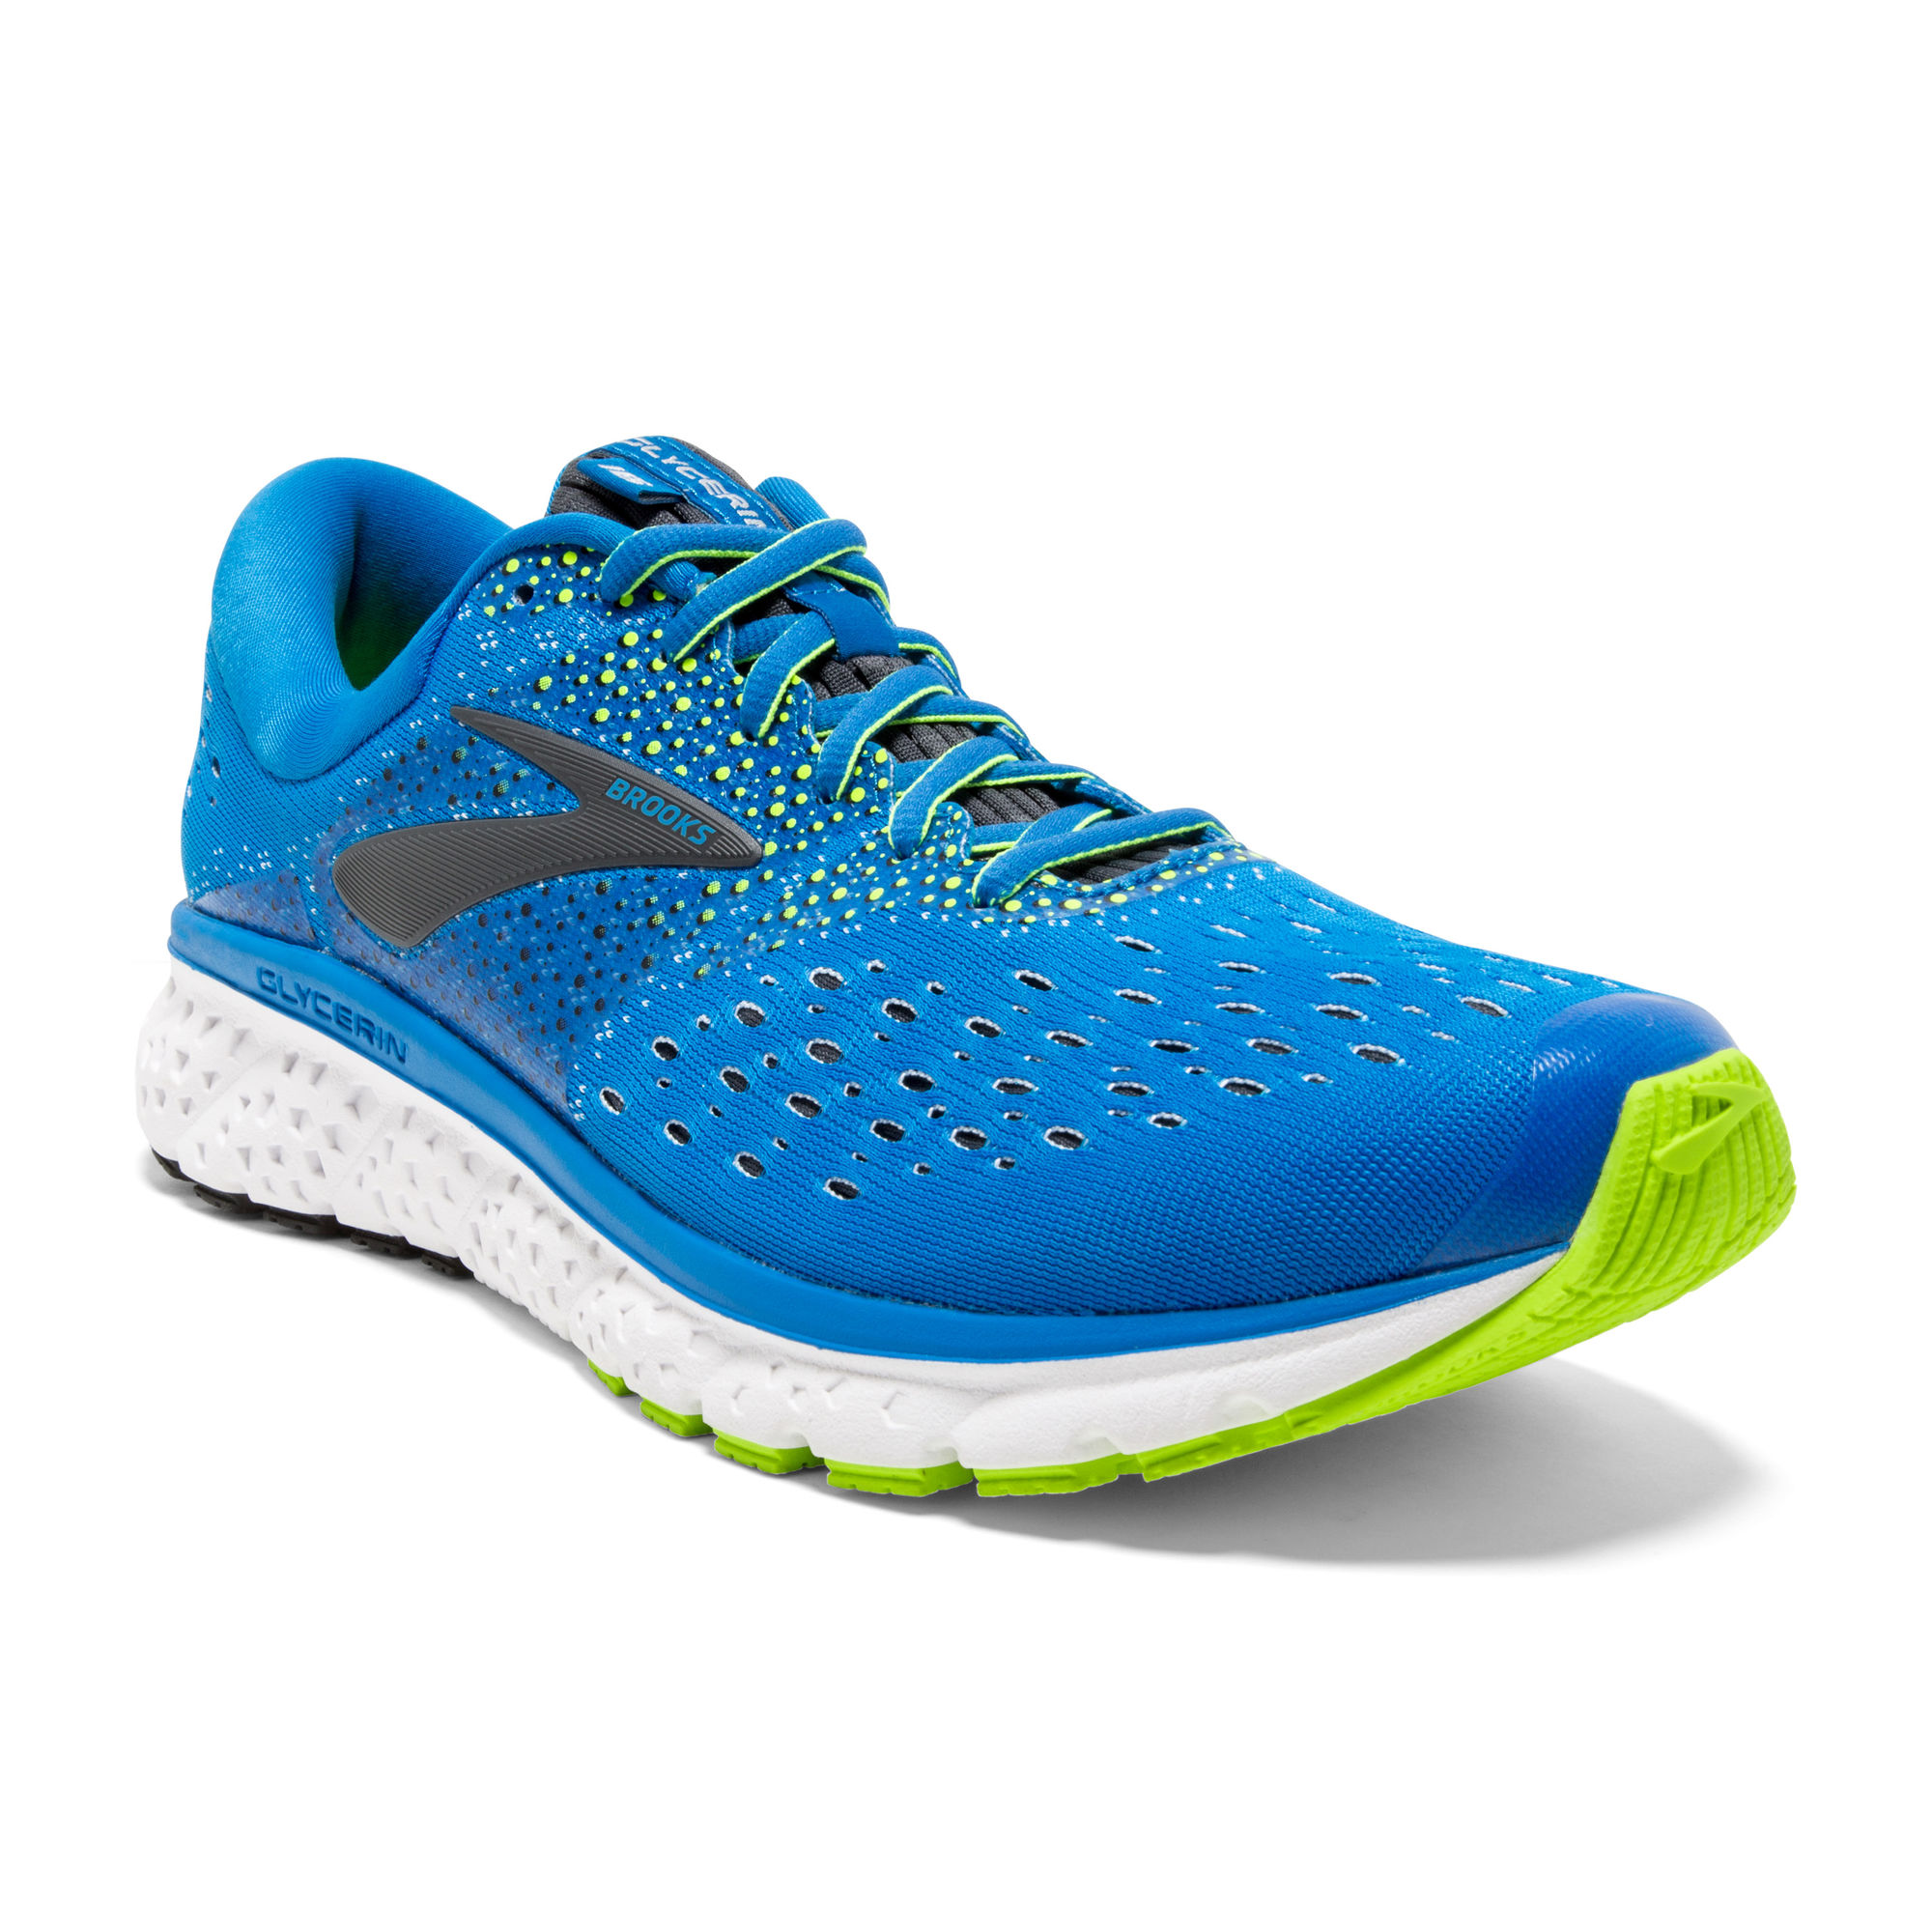 Brooks Glycerin 16 in Blau